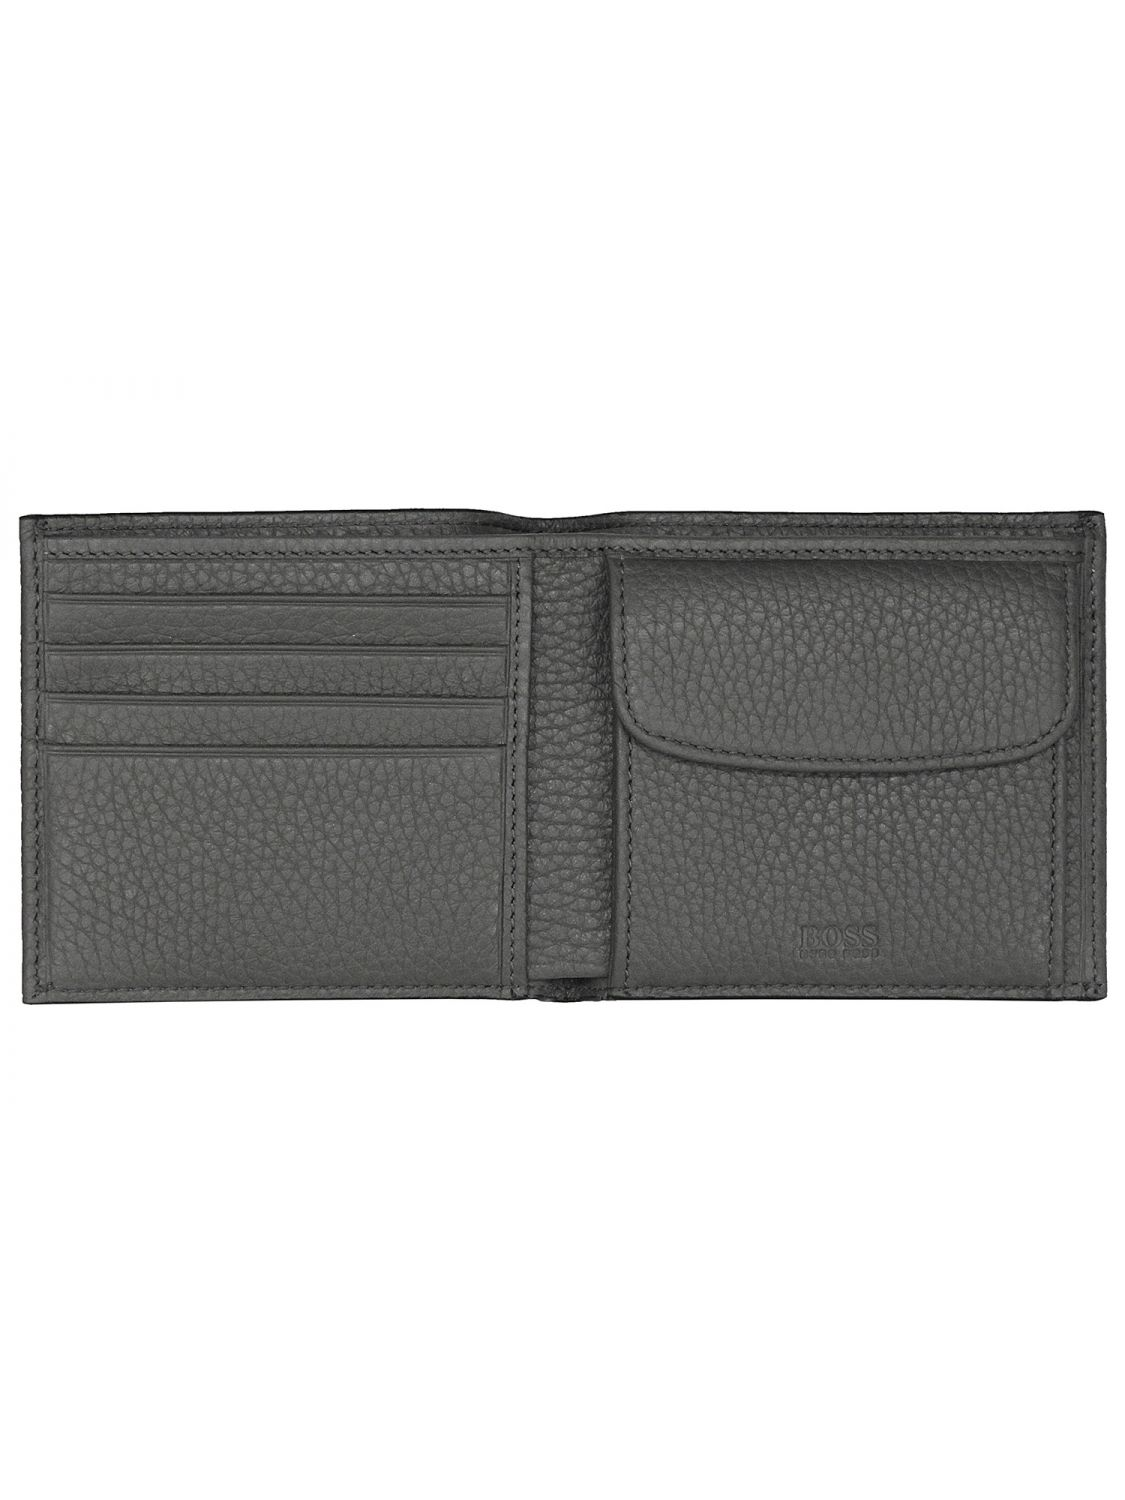 BOSS 50390403 Mens Wallet Crosstown Medium Grey • uhrcenter 605442807b